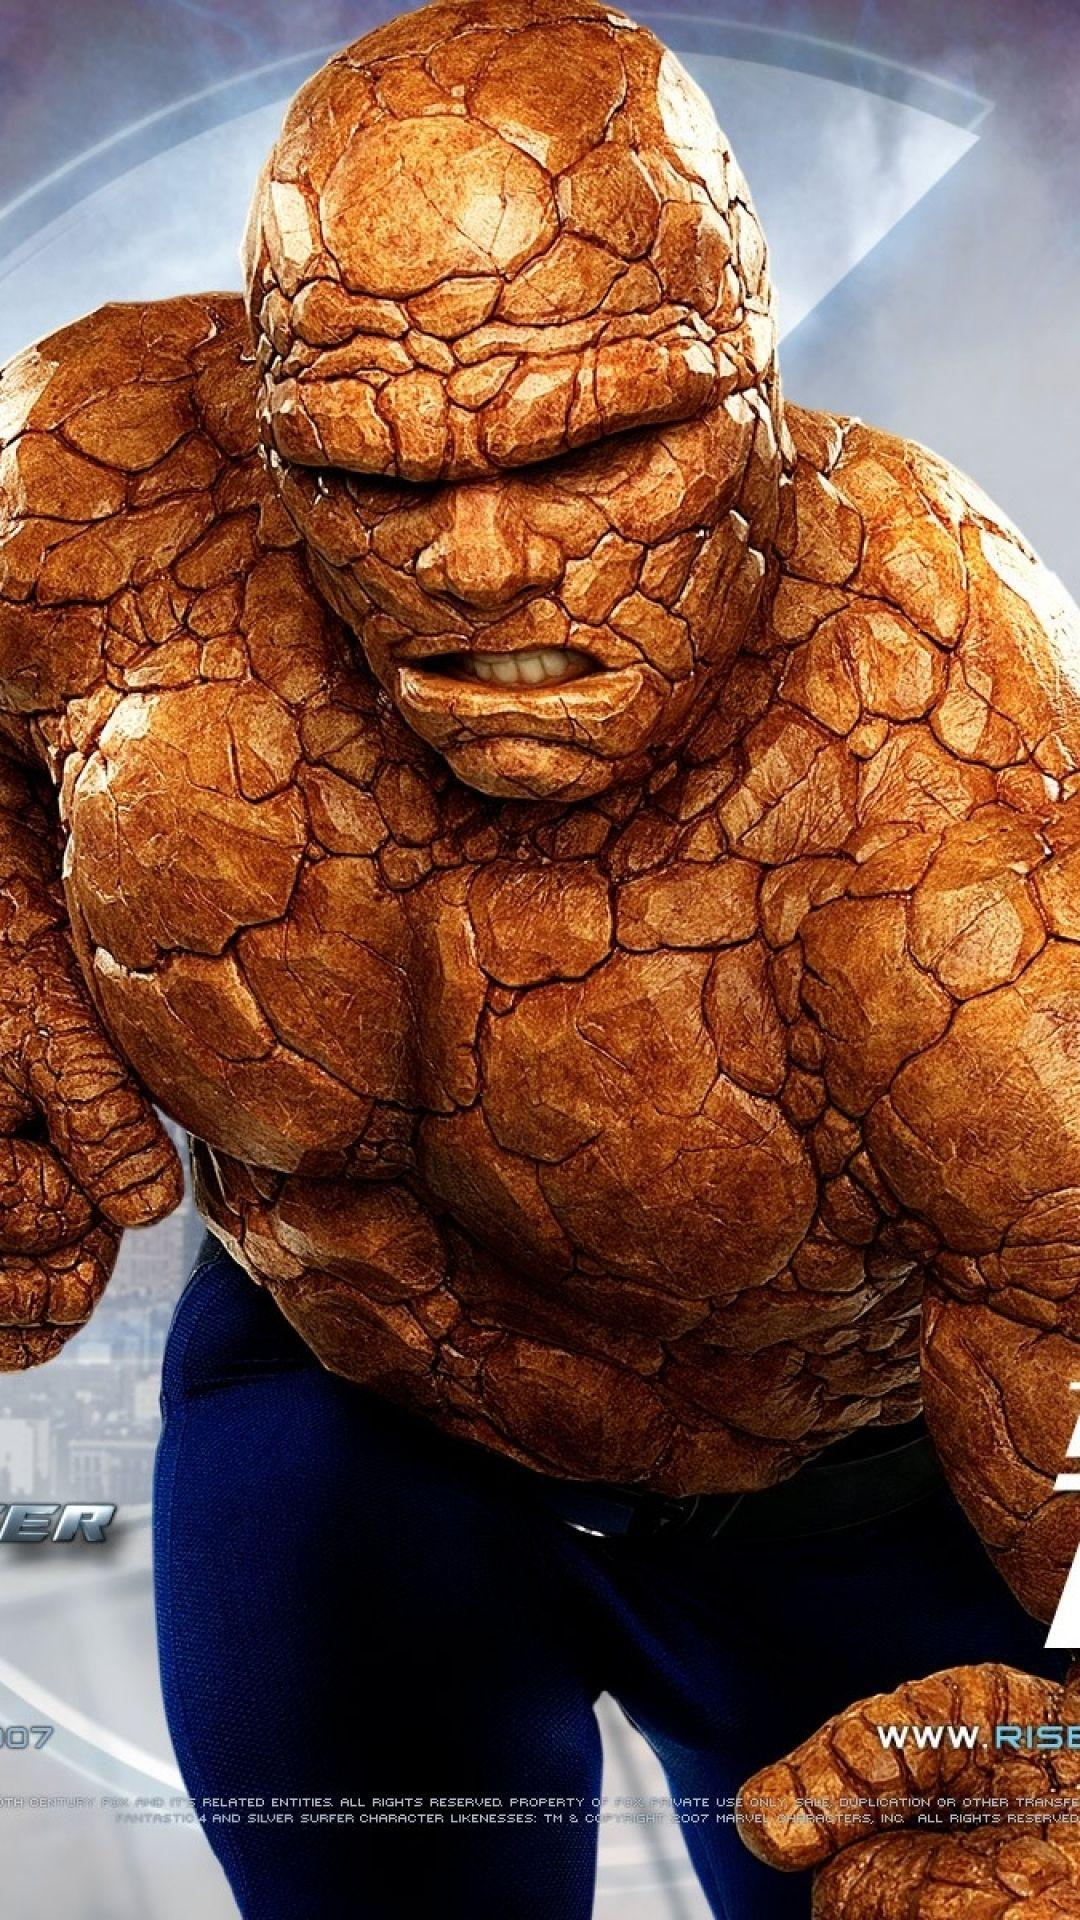 Download Wallpaper 1080x1920 Fantastic 4, The thing, Ben grimm ...